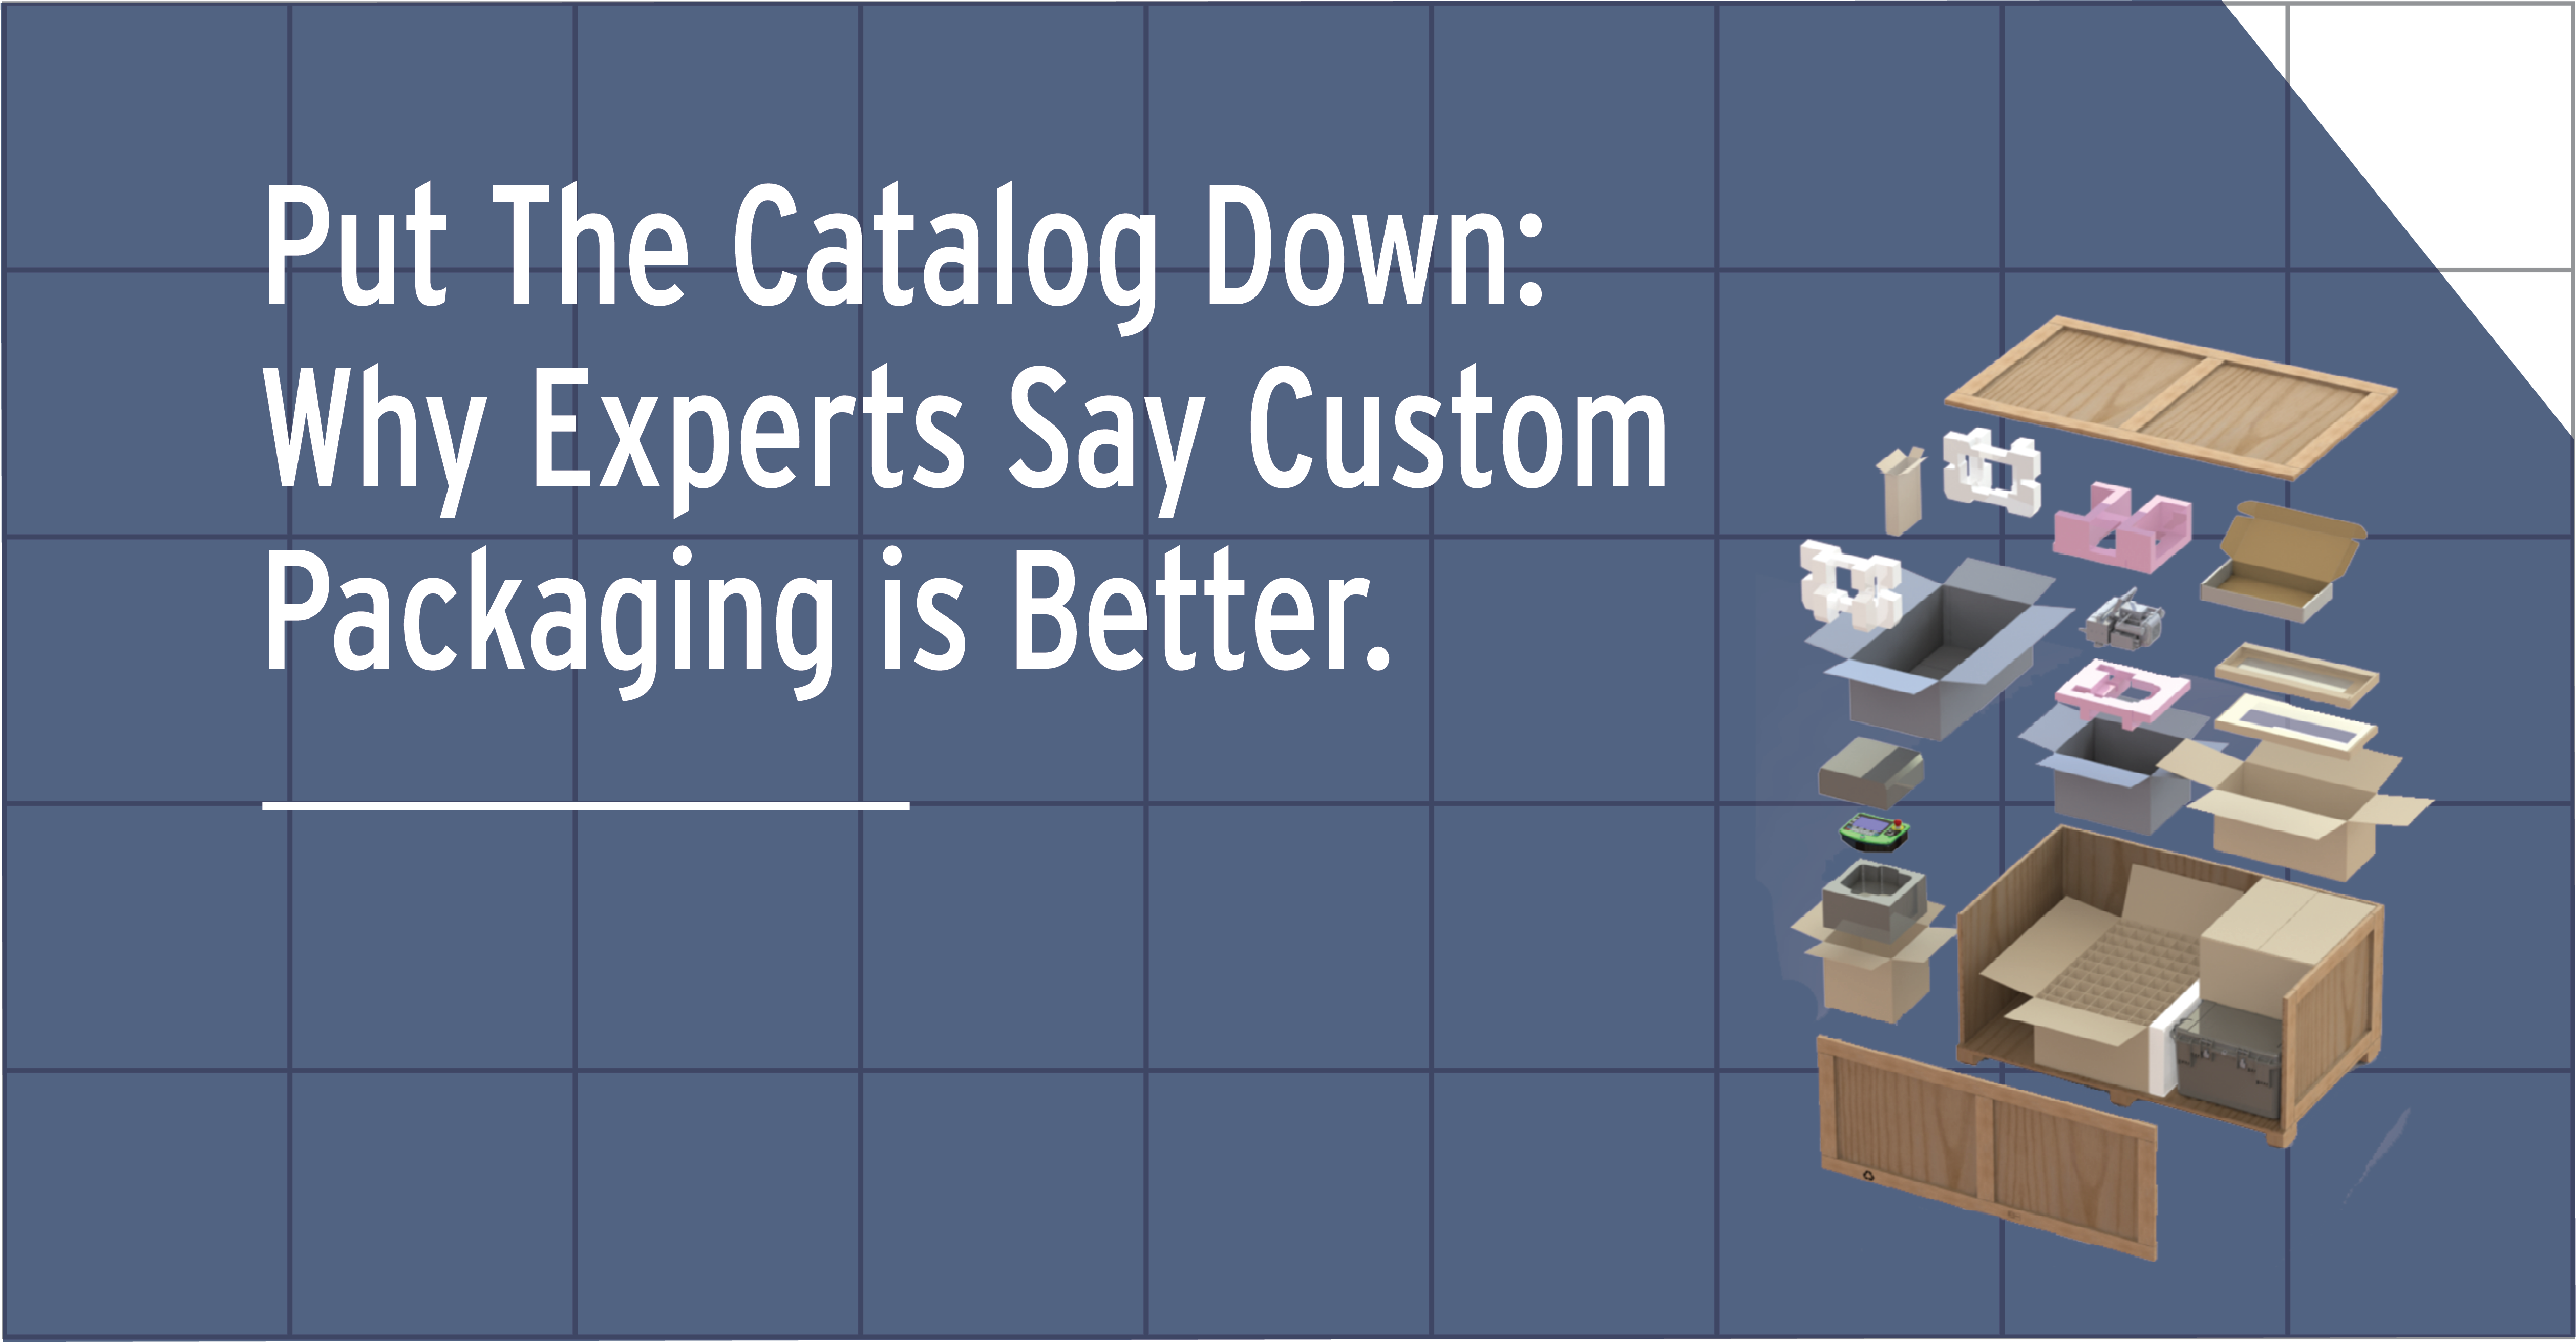 Put The Catalog Down: Why Experts Say Custom Packaging is Better